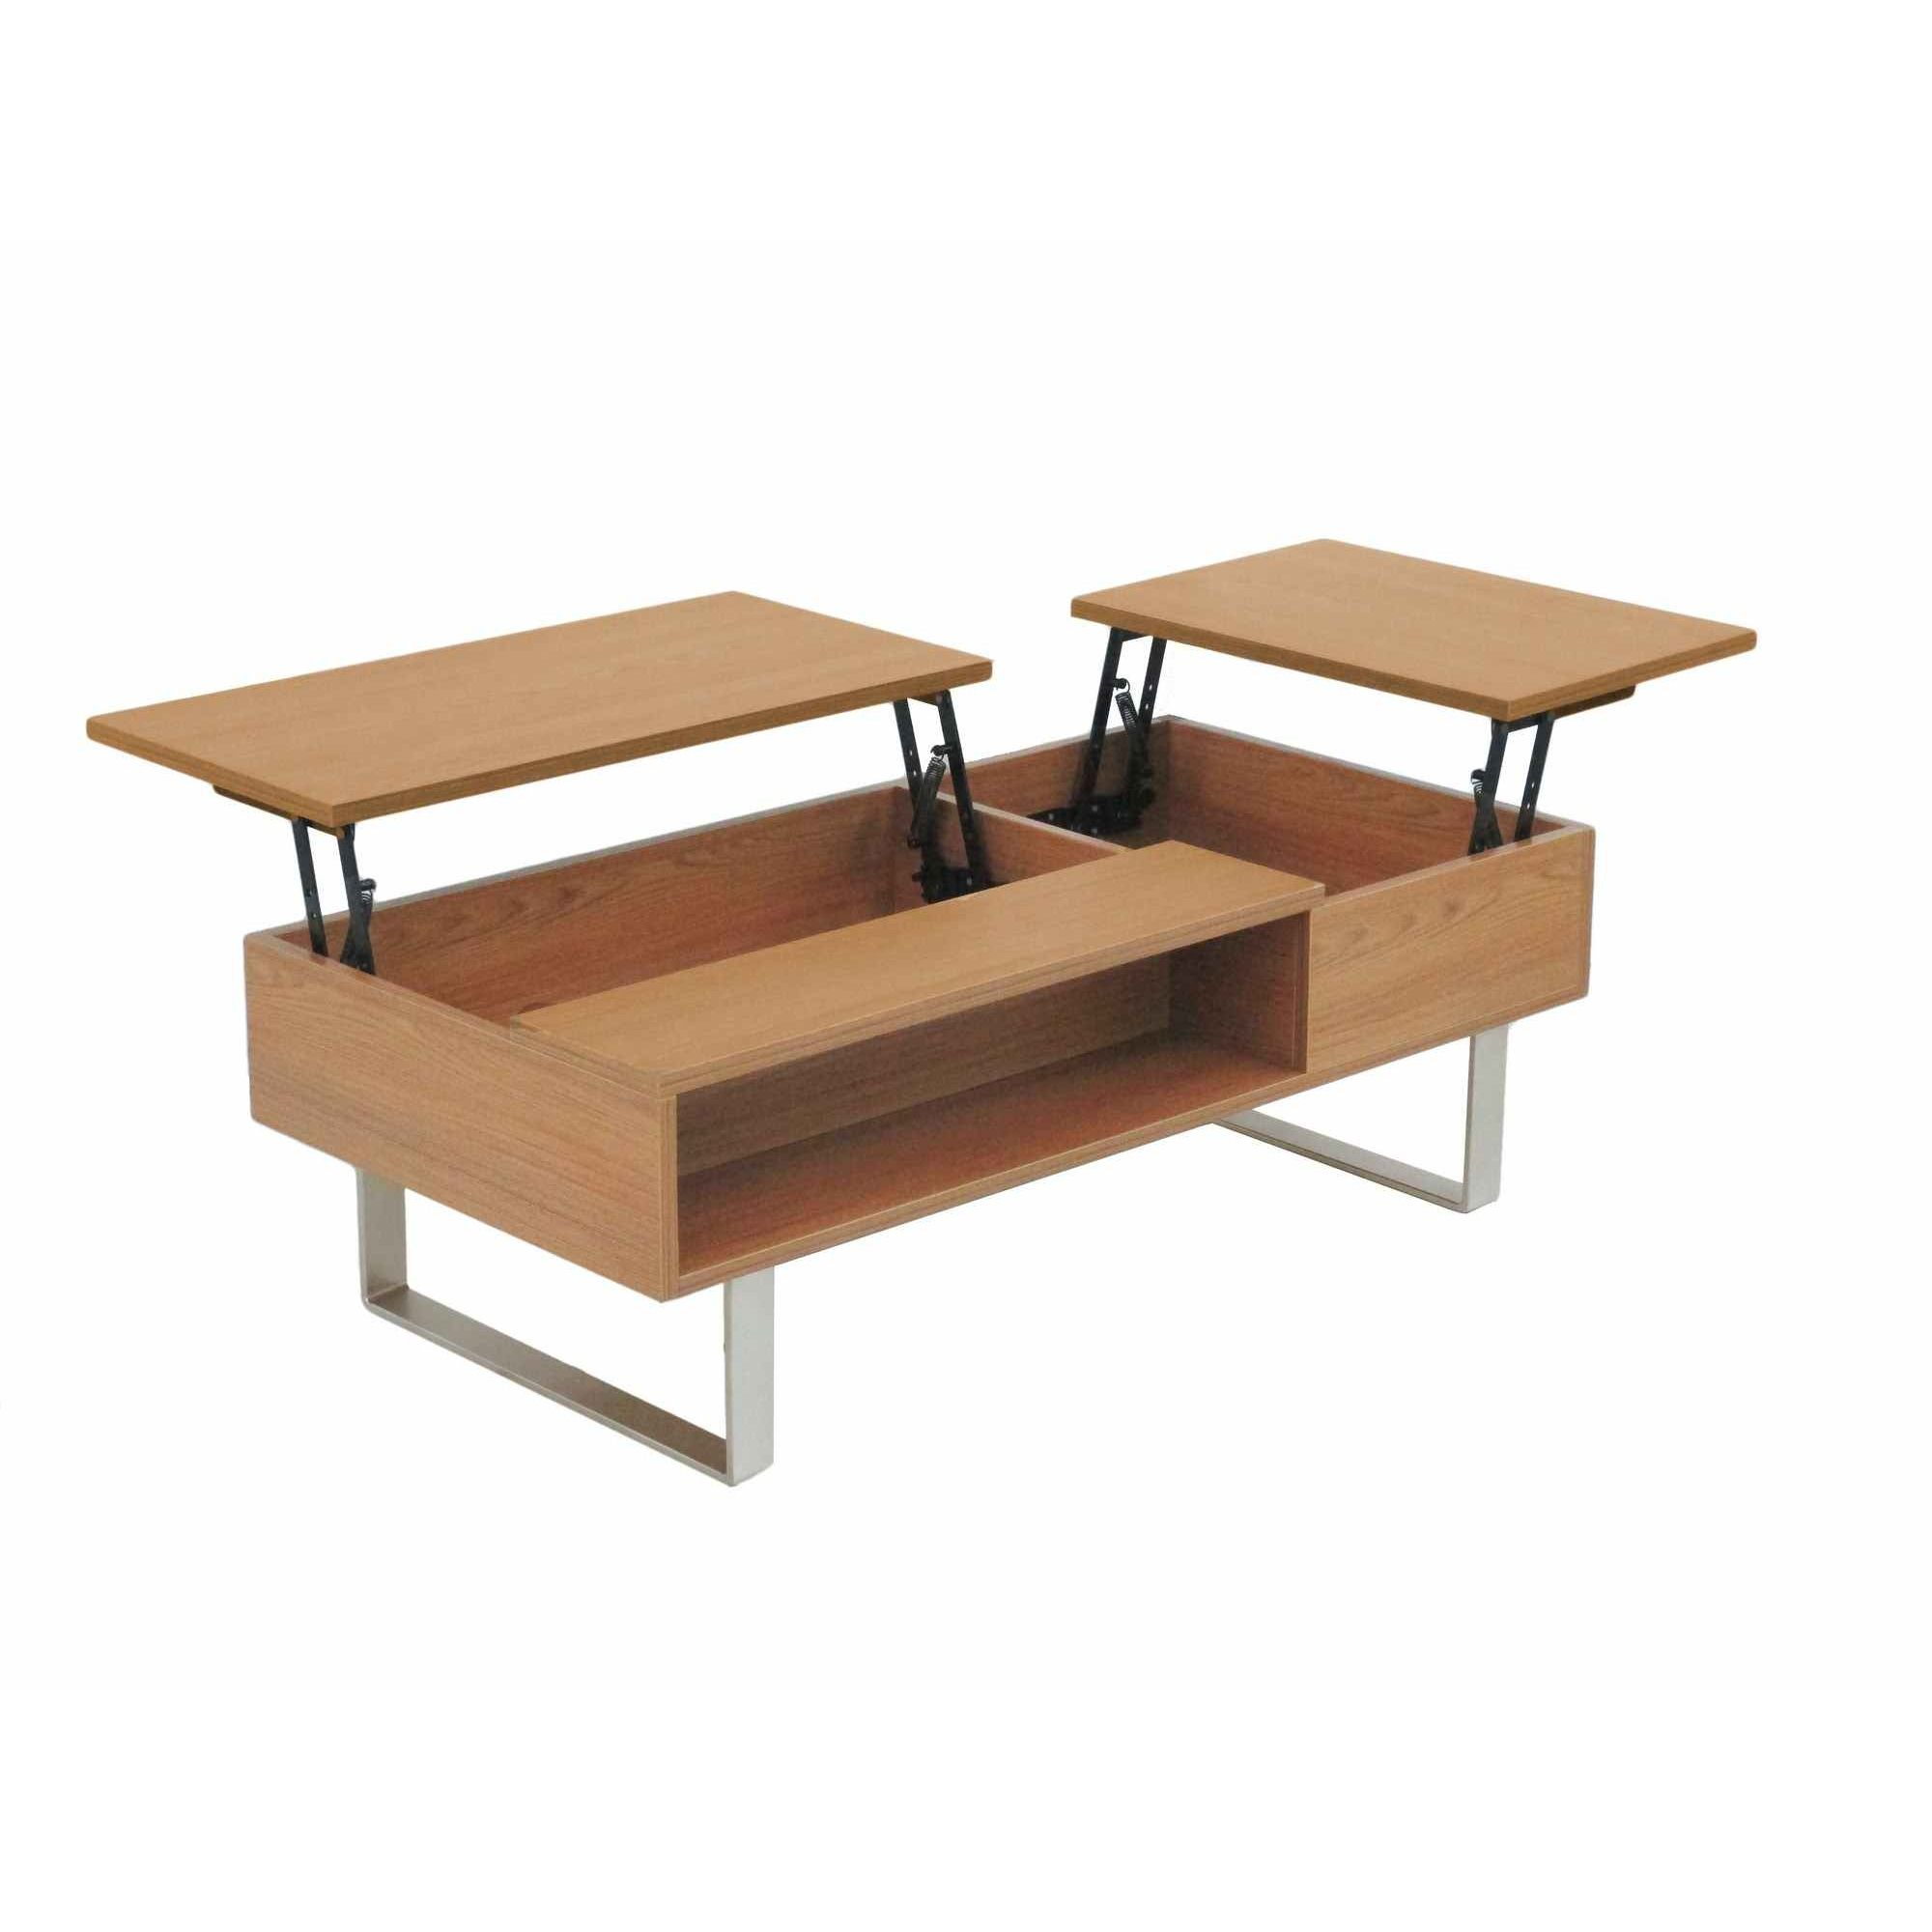 Incroyable De Mecanisme Table Basse Relevable